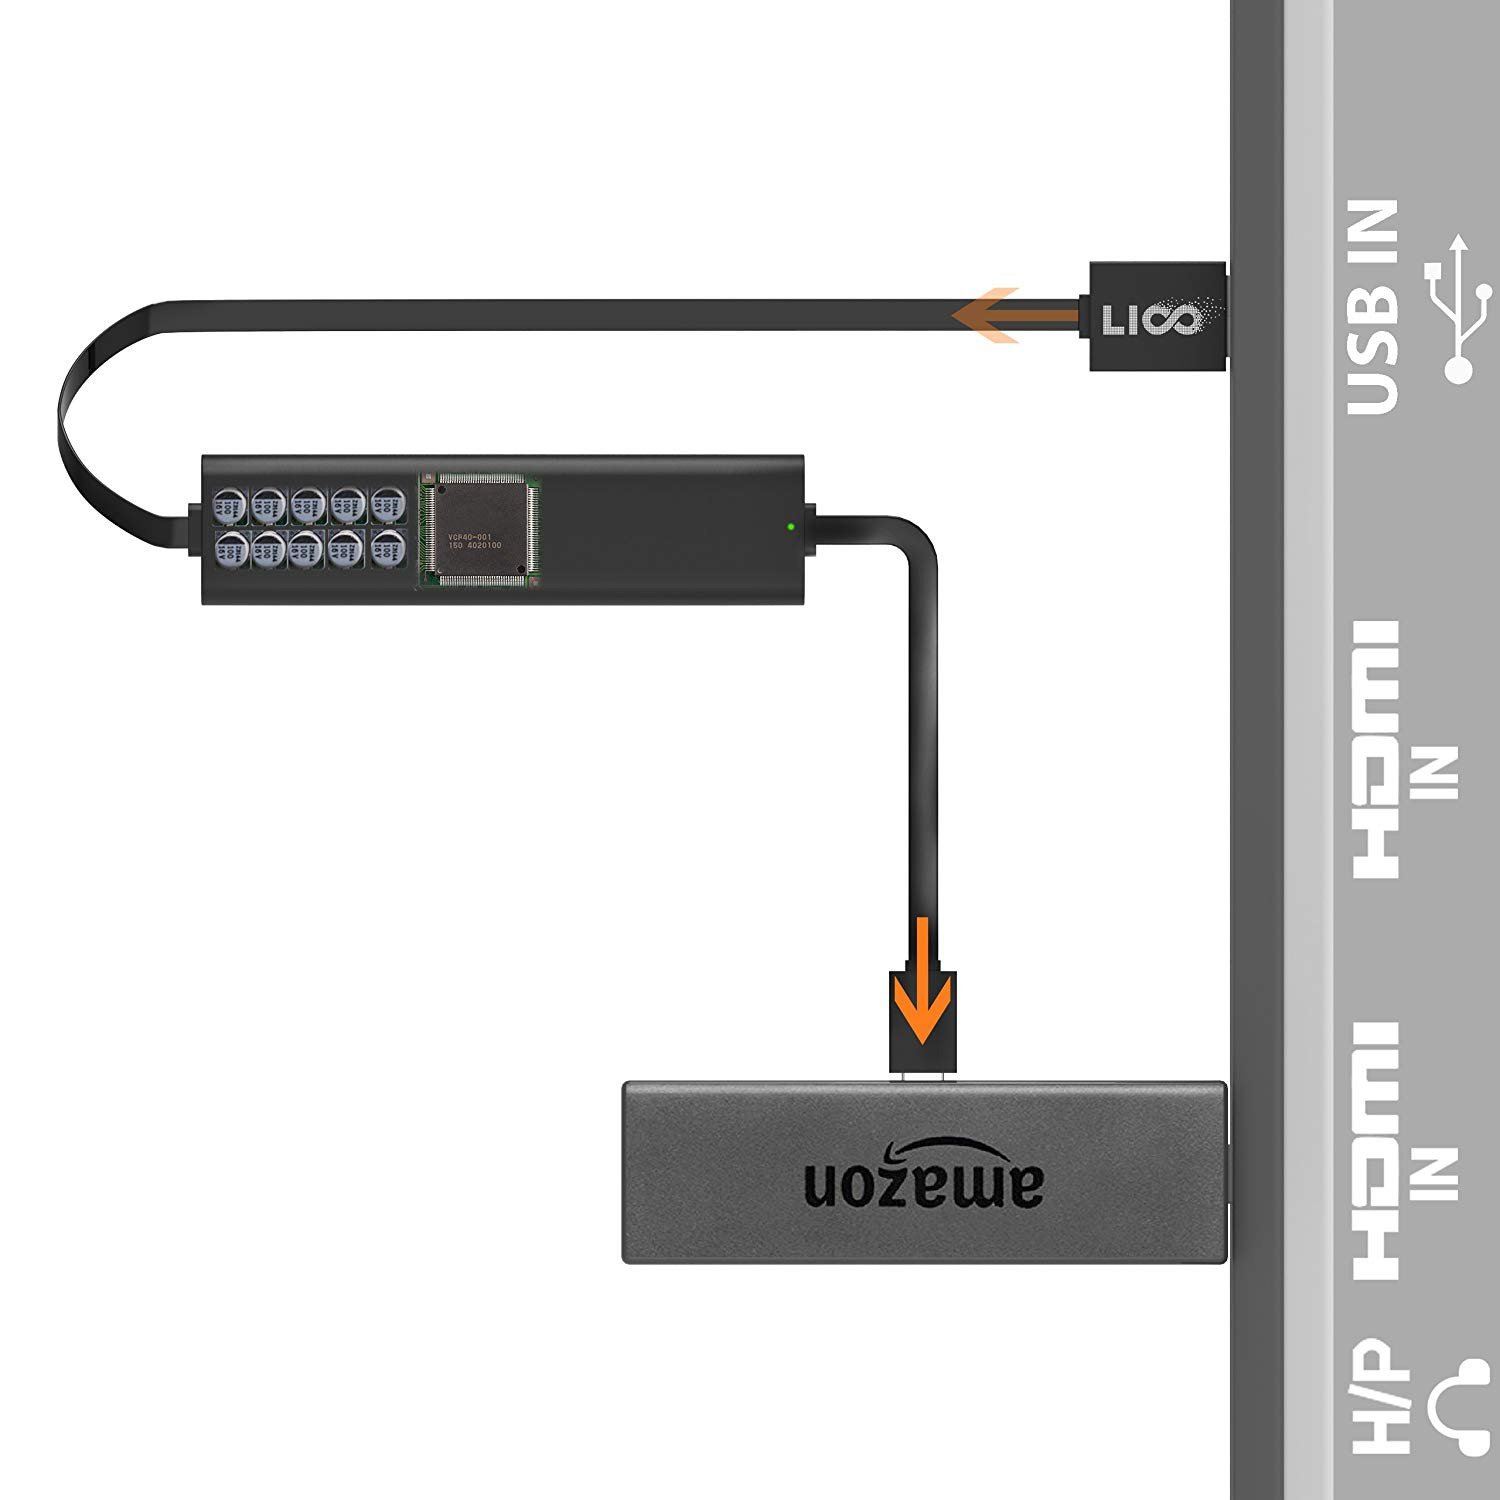 USB Fire TV Stick Power Cable, Liootech Fire Short Cable to TV USB Port Compatible with Amazon Fire TV, Roku Streaming Stick, Chrome Stick and Other Streaming Media Player